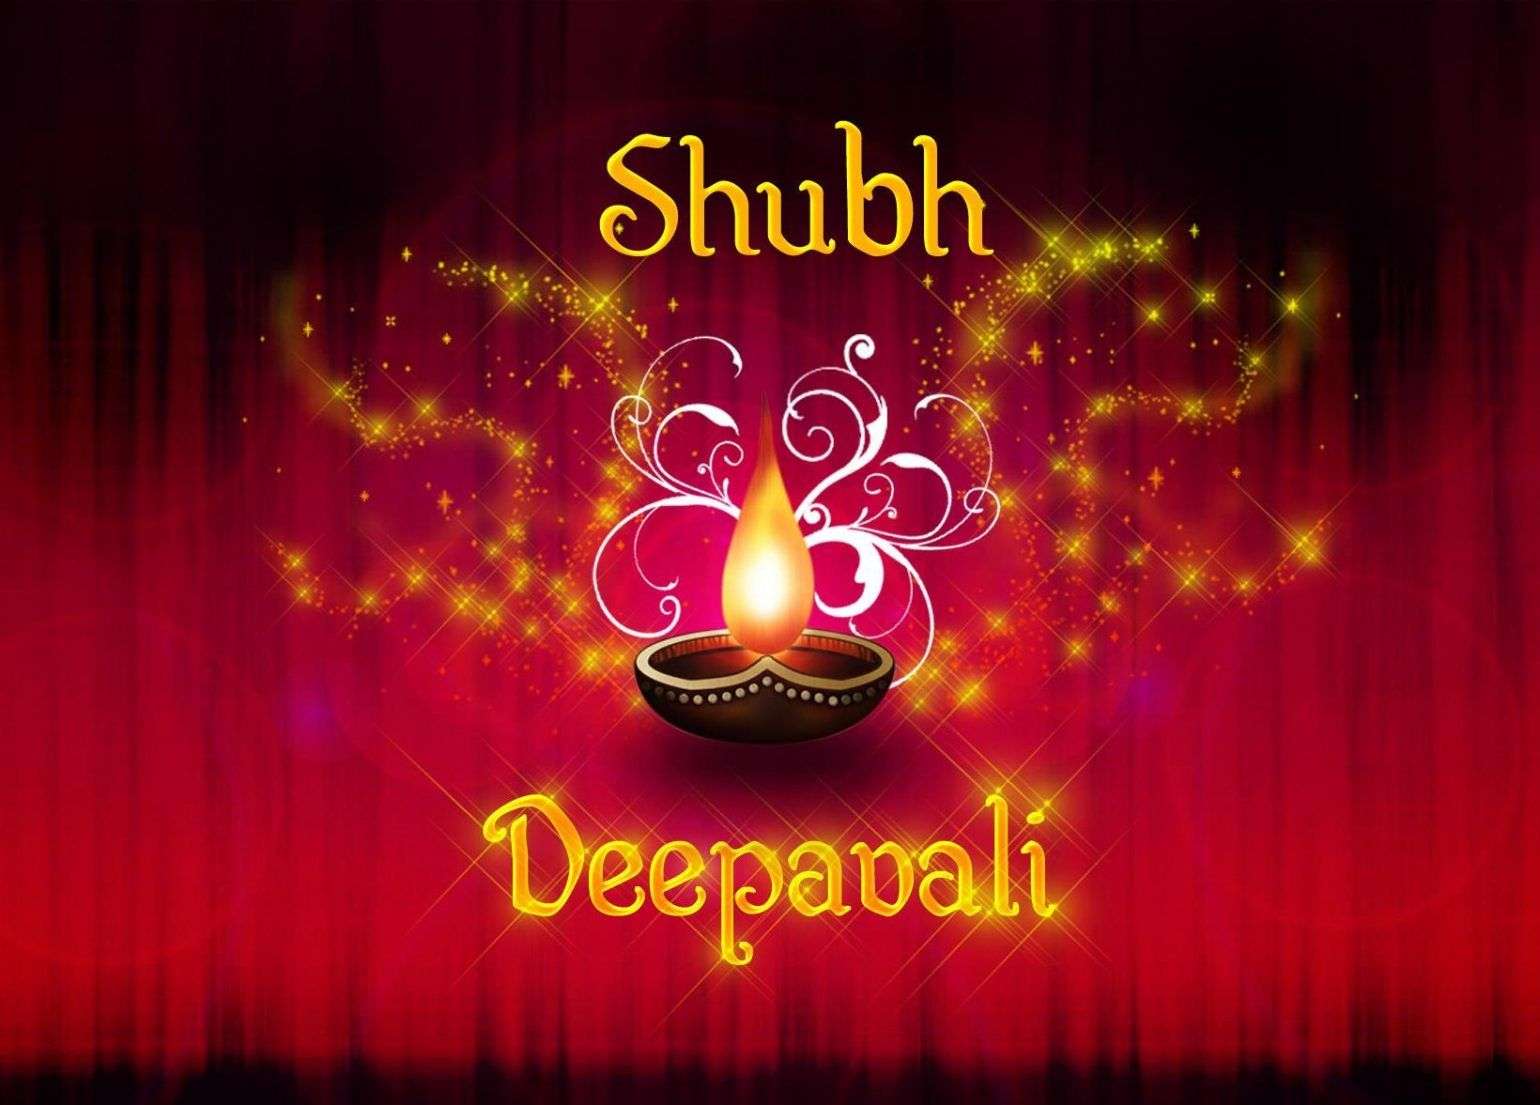 Happy Diwali Hd Images Diwali Messages 2016 Pinterest Diwali